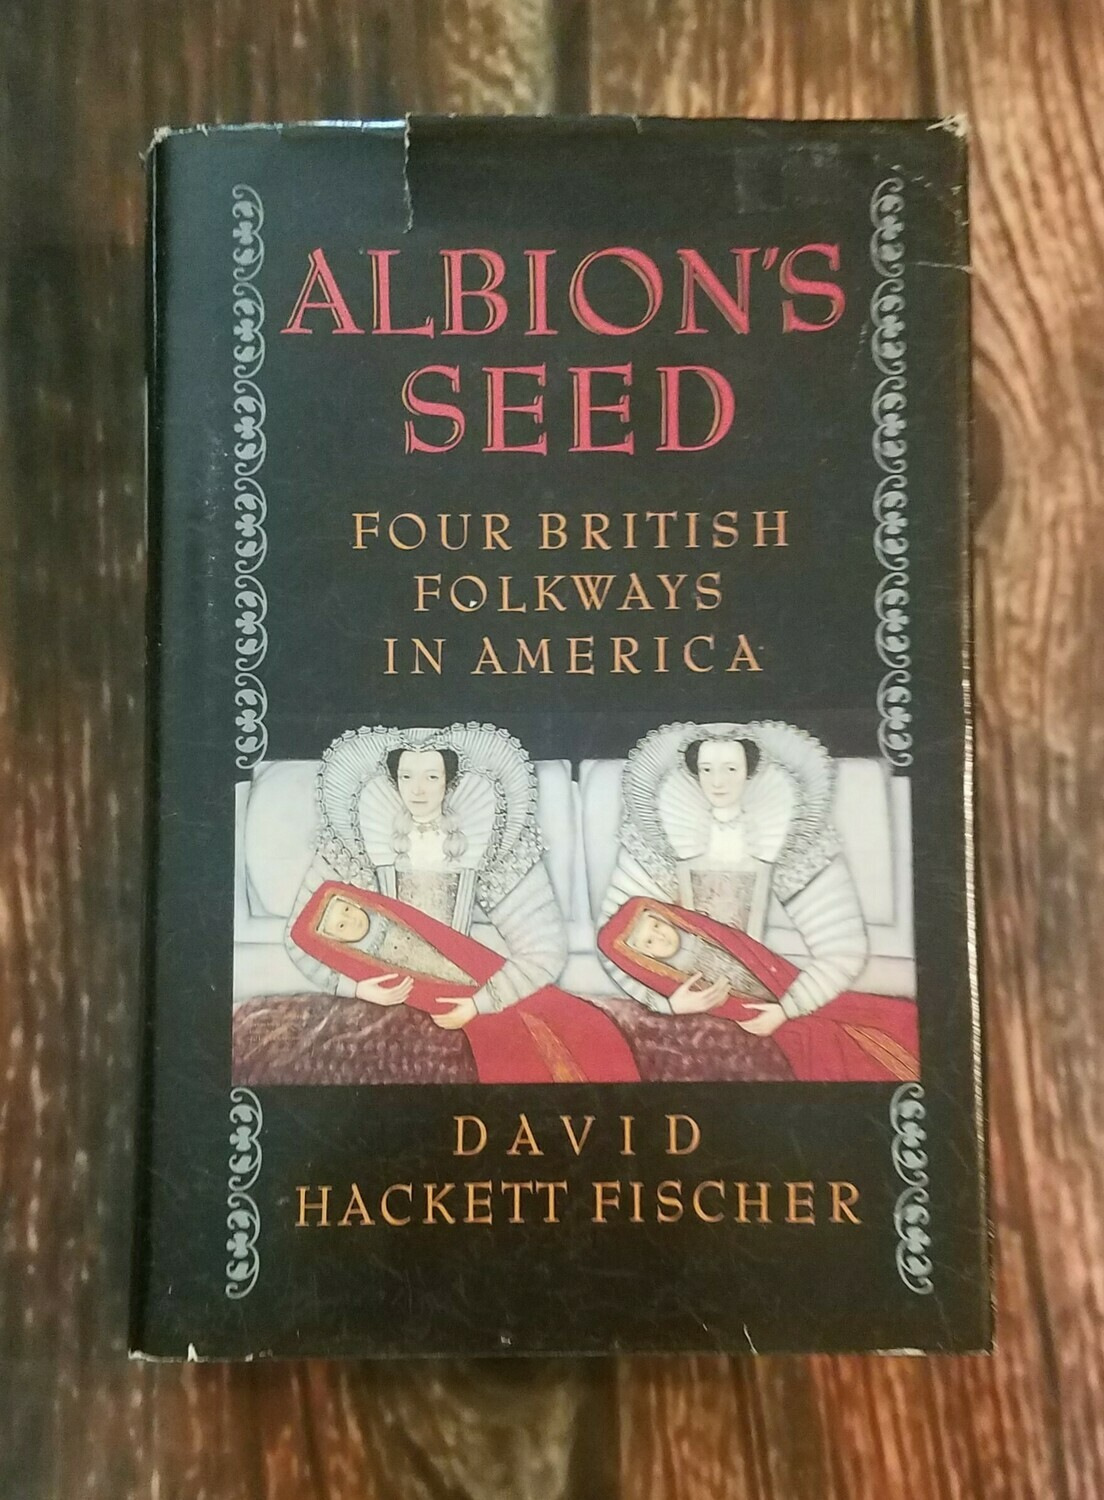 Albion's Seed: Four British Folkways in America by David Hackett Fischer